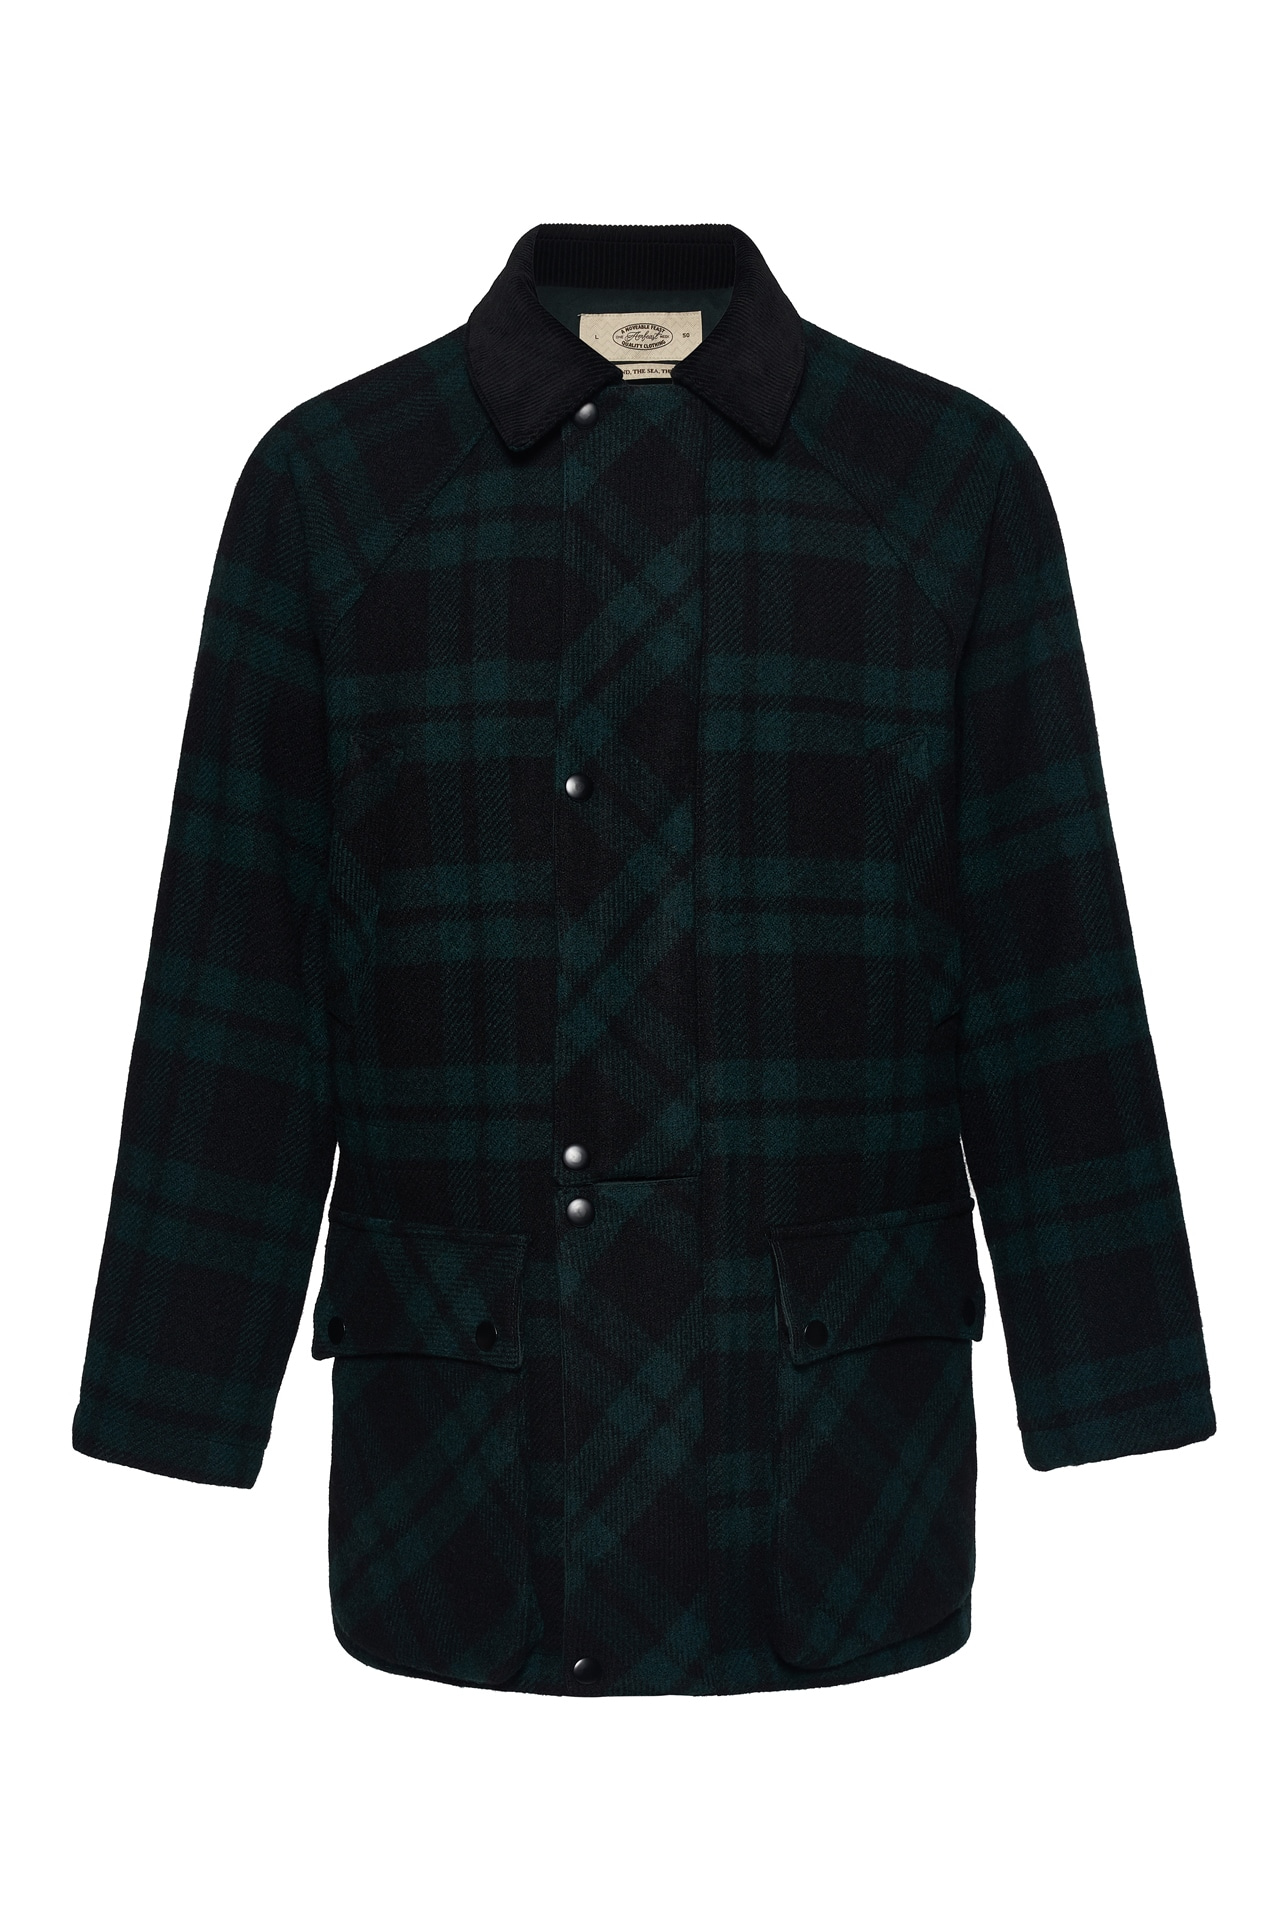 GREEN TARTAN SIGNATURE CITY HALF COATLovat millAMFEAST(암피스트)